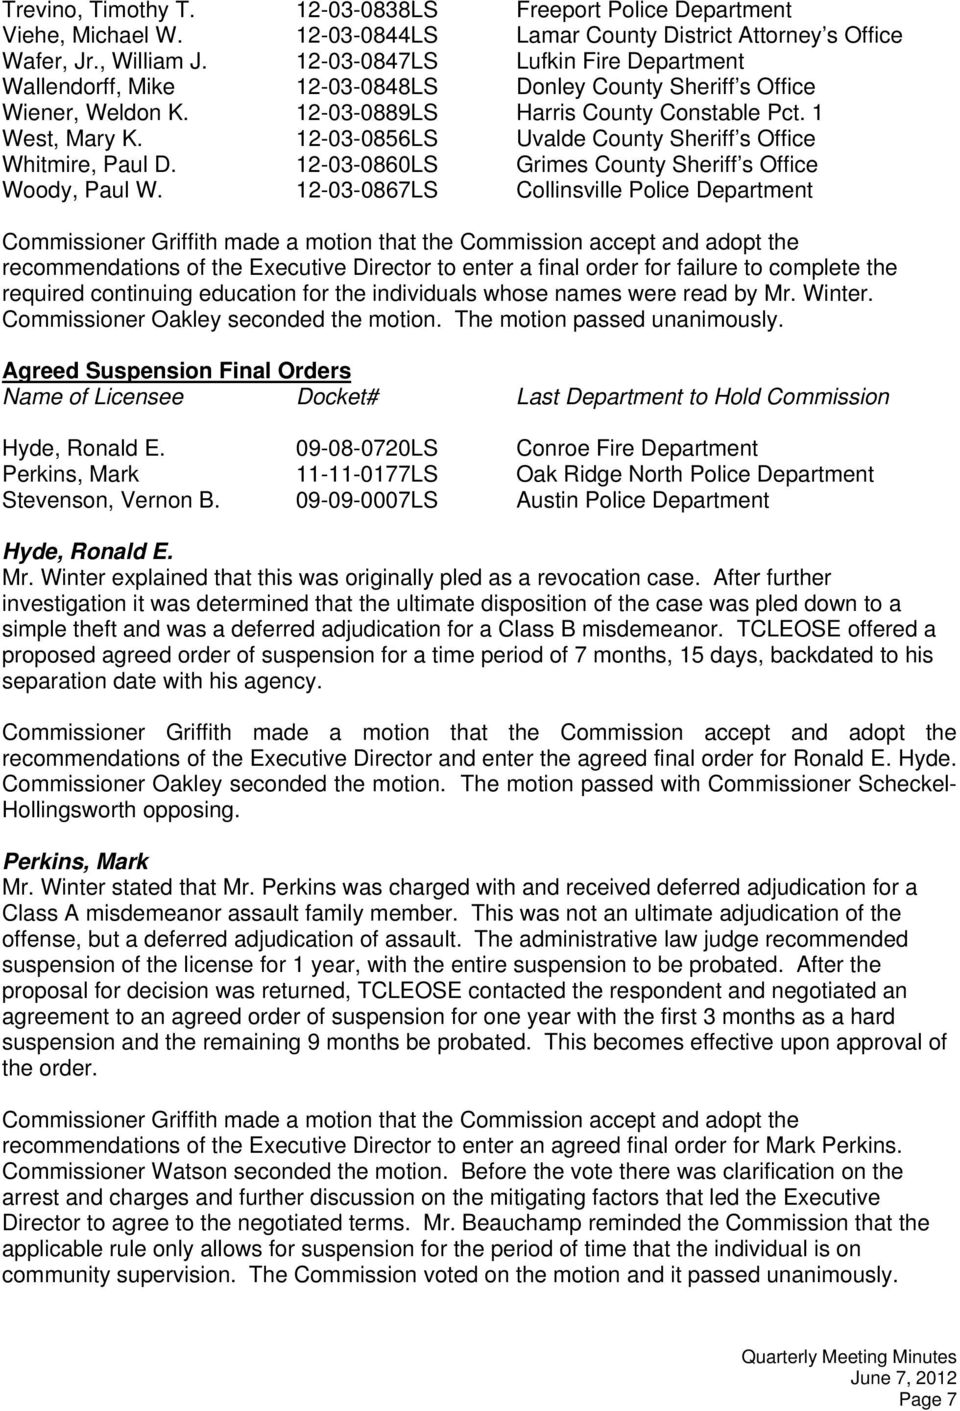 Agenda item #3, Approval of the minutes of the March 1, 2012